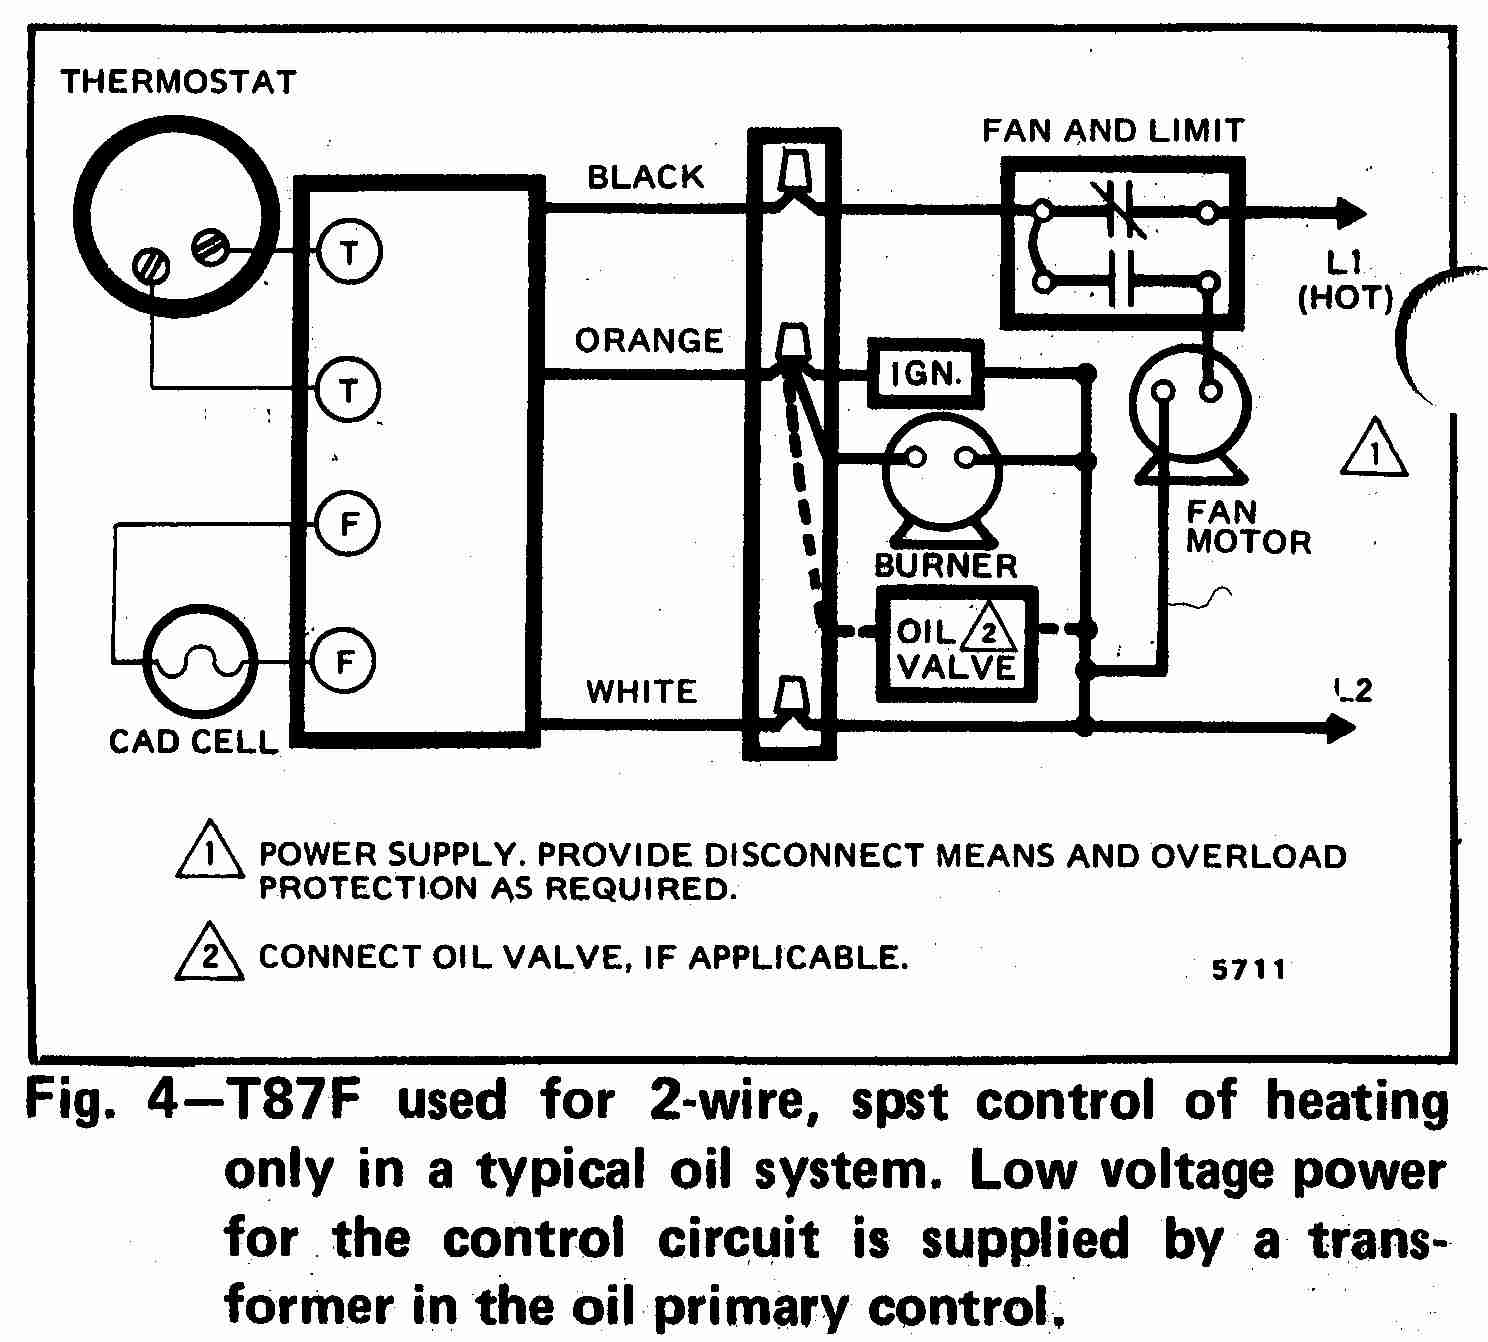 room thermostat wiring diagrams for hvac systems rh inspectapedia com Boiler Thermostat Wiring Diagram 6 Wire Thermostat Wiring Diagram